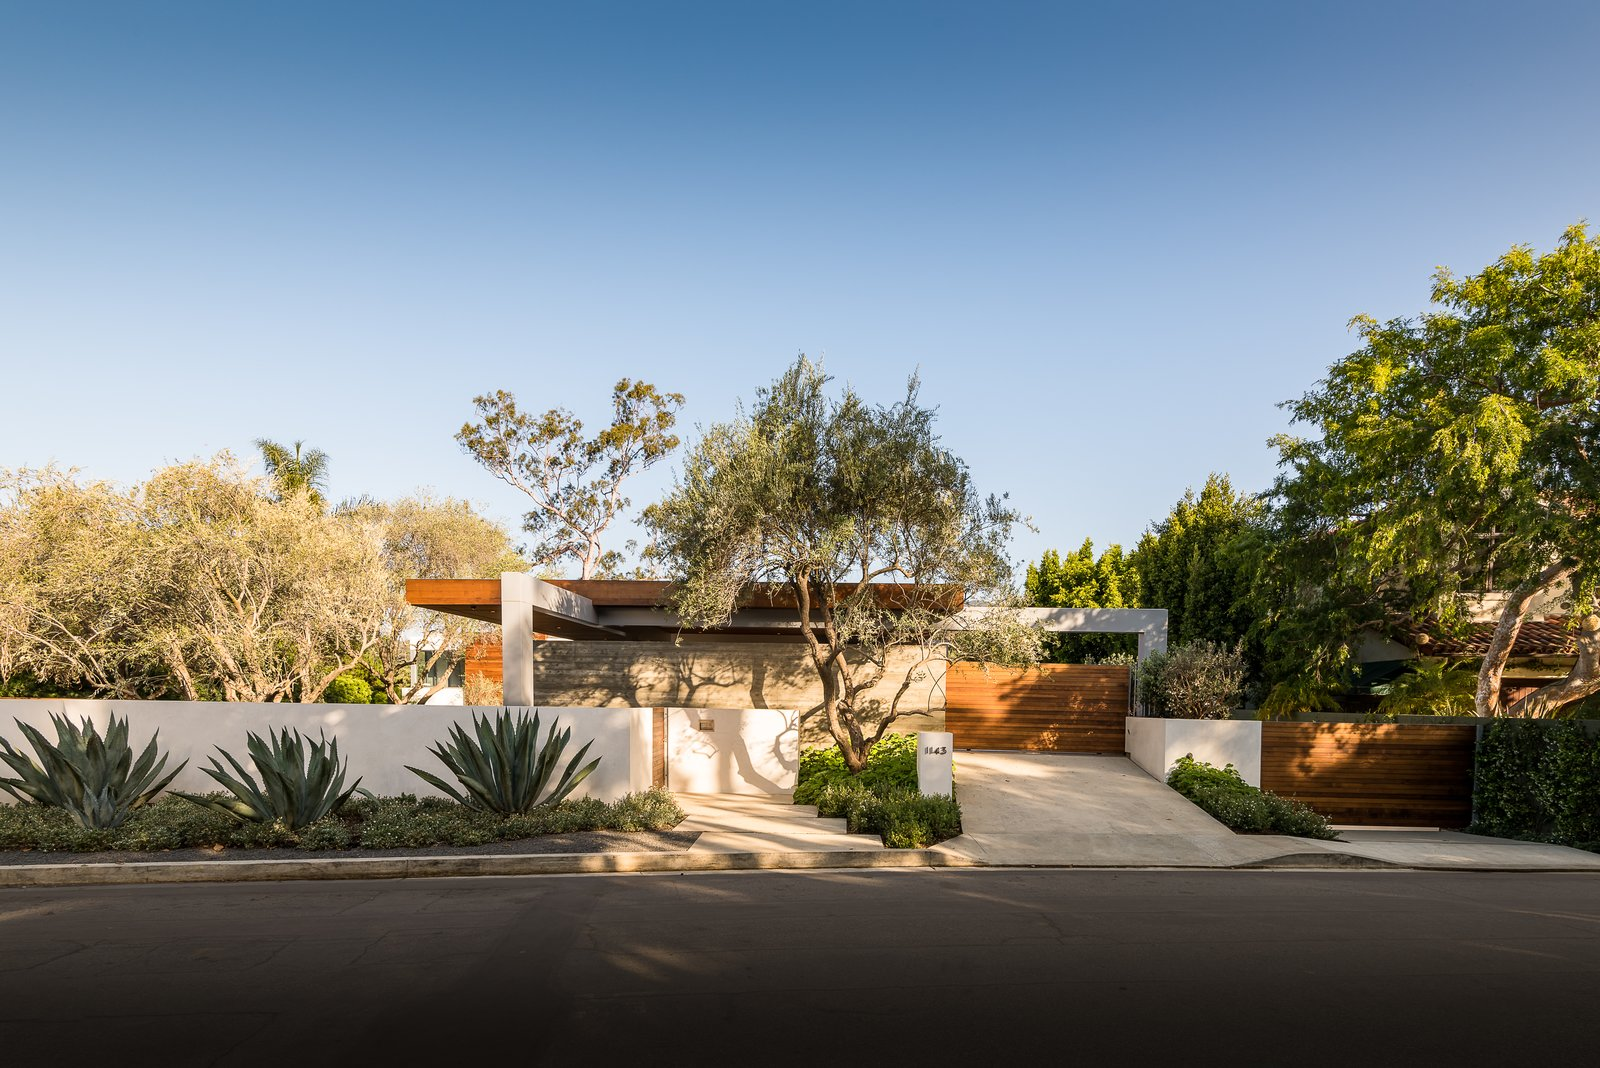 Outdoor, Landscape Lighting, Front Yard, Hardscapes, Wood Fences, Wall, Gardens, Trees, and Concrete Fences, Wall  Ravoli Drive Residence